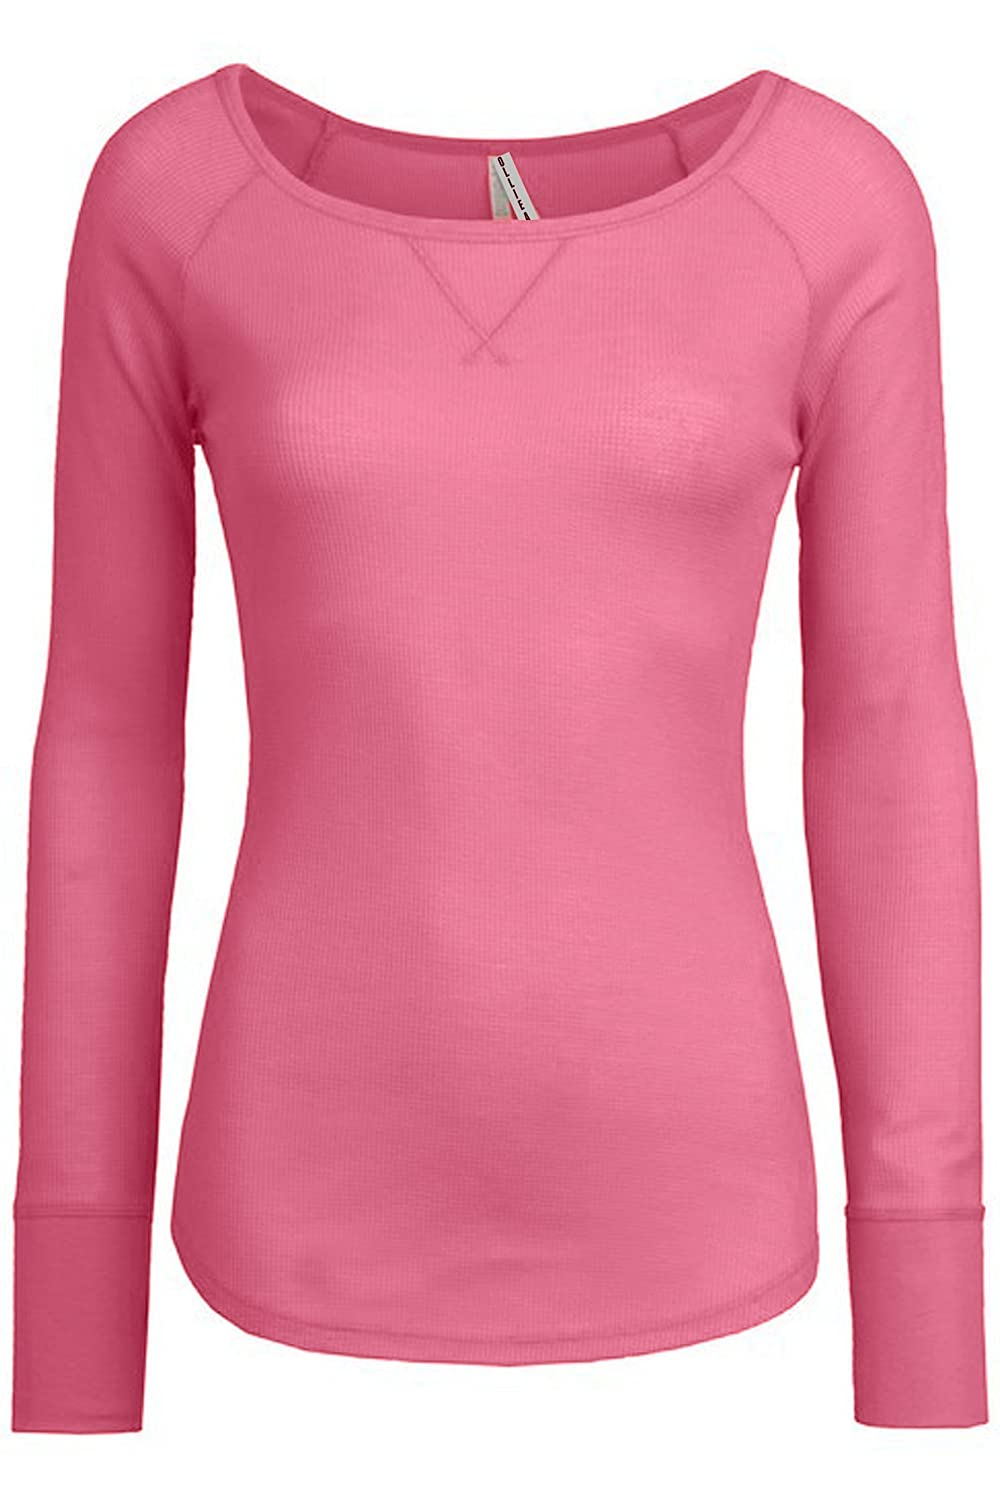 Ollie Arnes Women's Round Neck Fitted Long Sleeve Cool Sweater Shirt Top OA-SOLIDLONGLSEEVE